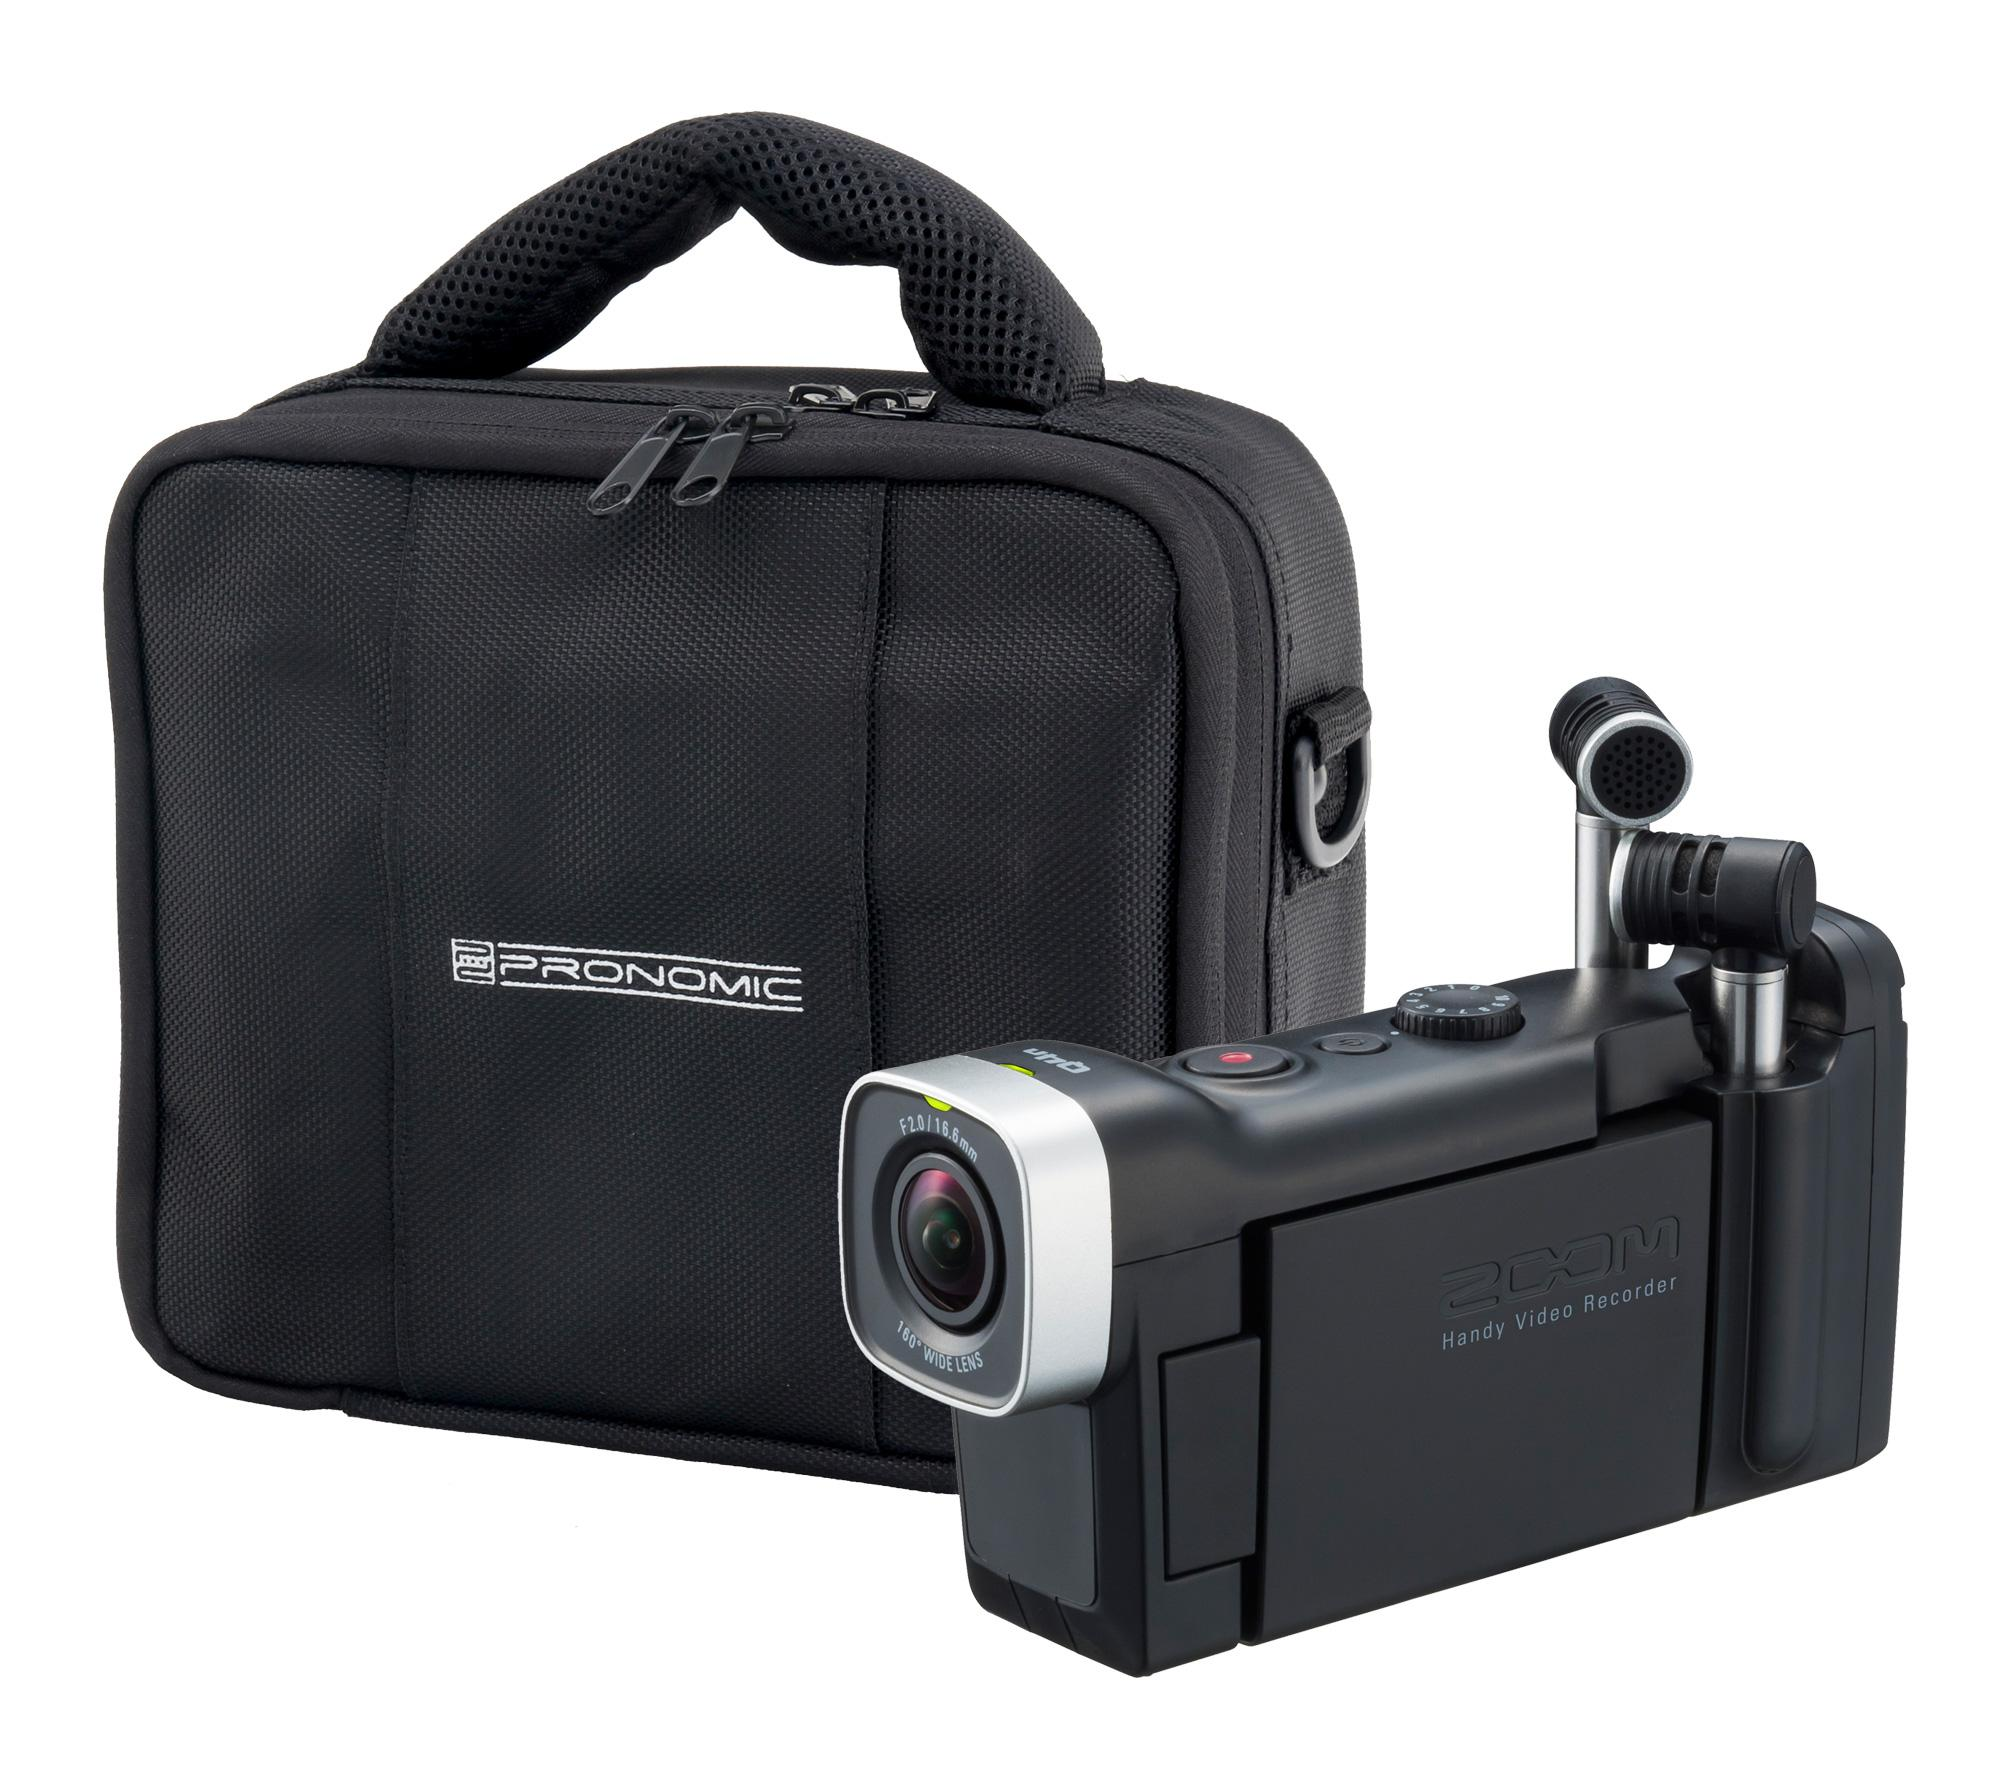 Zoom Q4n SET inkl. Pronomic RB Flex Bag